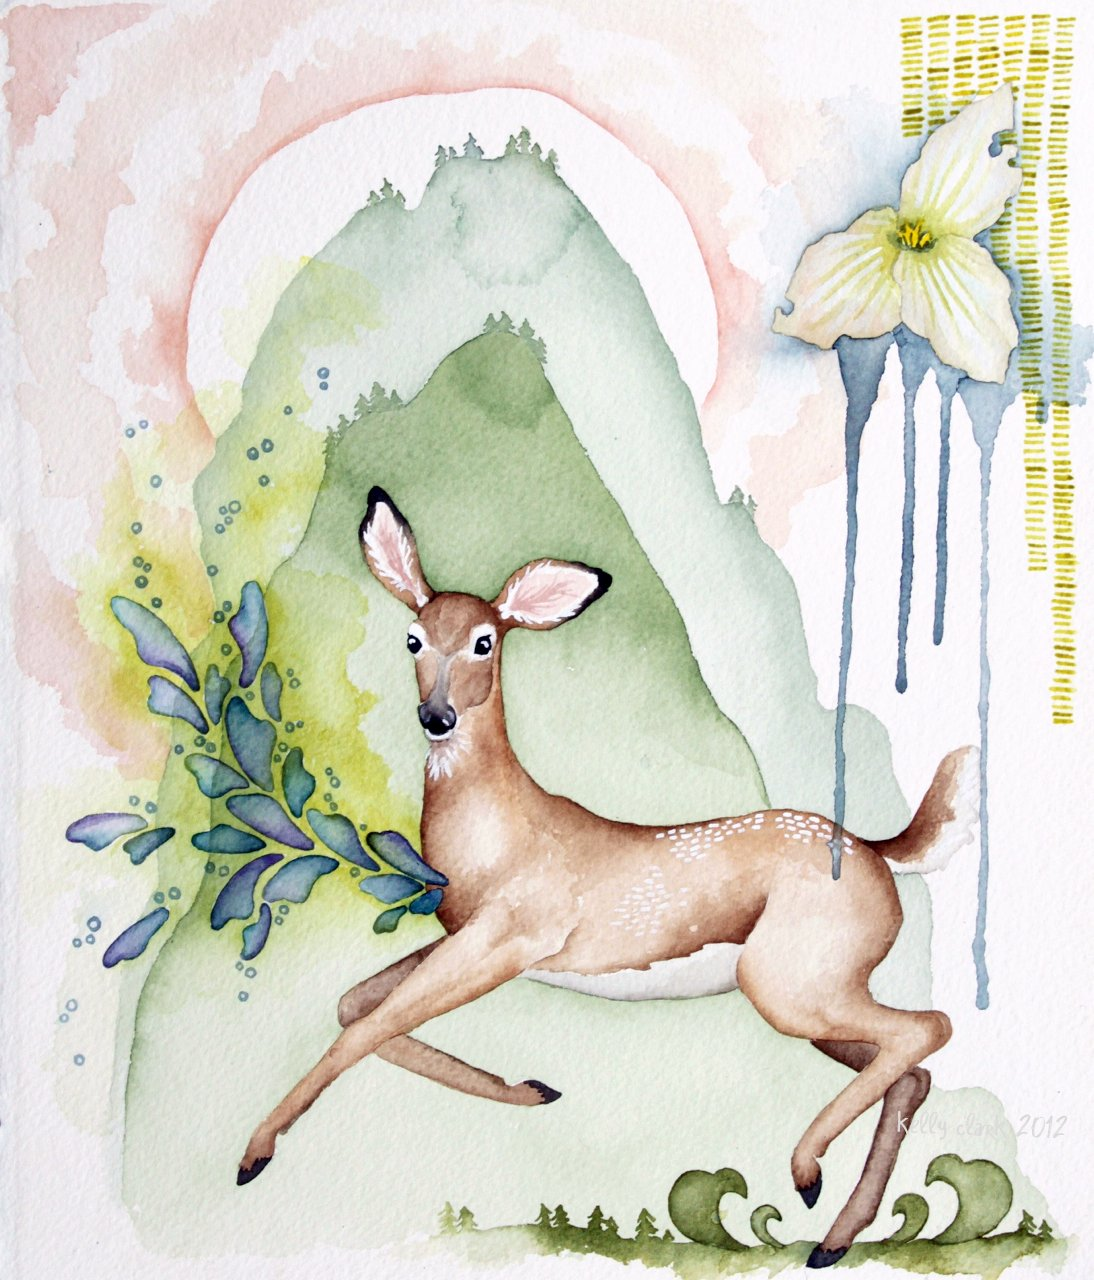 Working with a Realistic Doe and Trillium, Recognizable mountains, and Abstract marks, rings and halos.